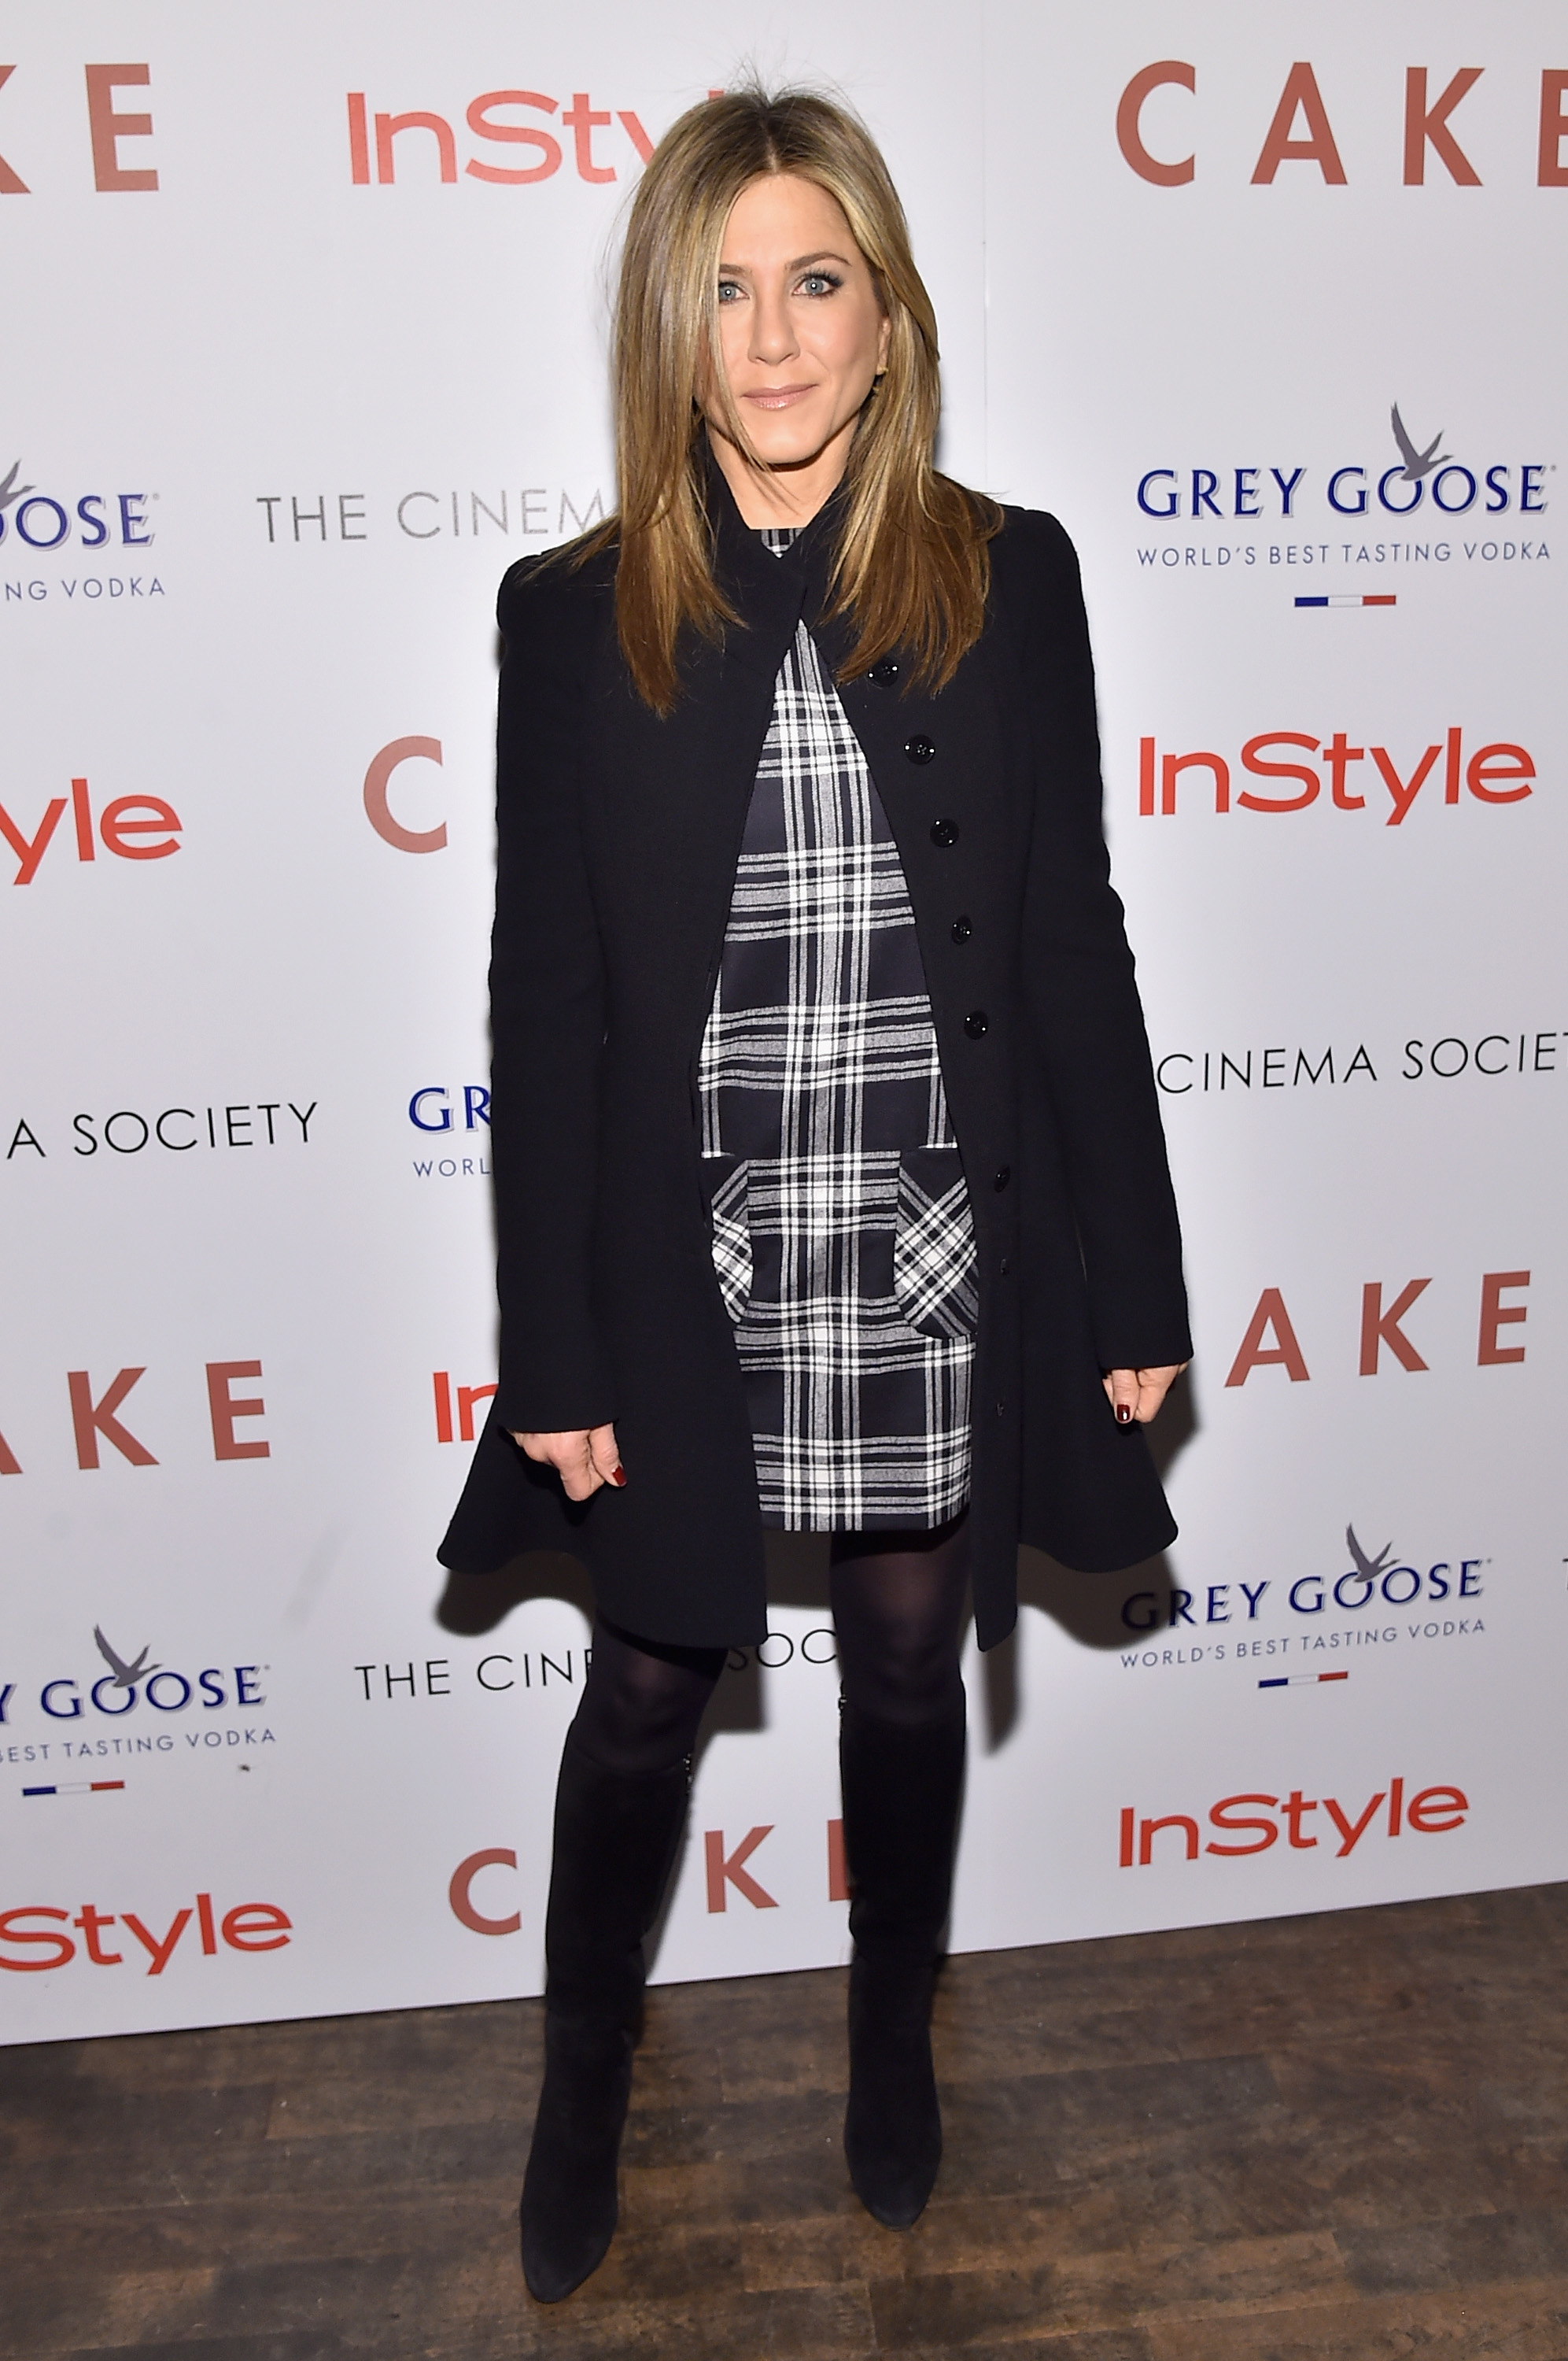 "NEW YORK, NY - NOVEMBER 16: Actress Jennifer Aniston attends the ""Cake"" screening hosted by The Cinema Society & Instyle at Tribeca Grand Hotel on November 16, 2014 in New York City. (Photo by Mike Coppola/Getty Images)"